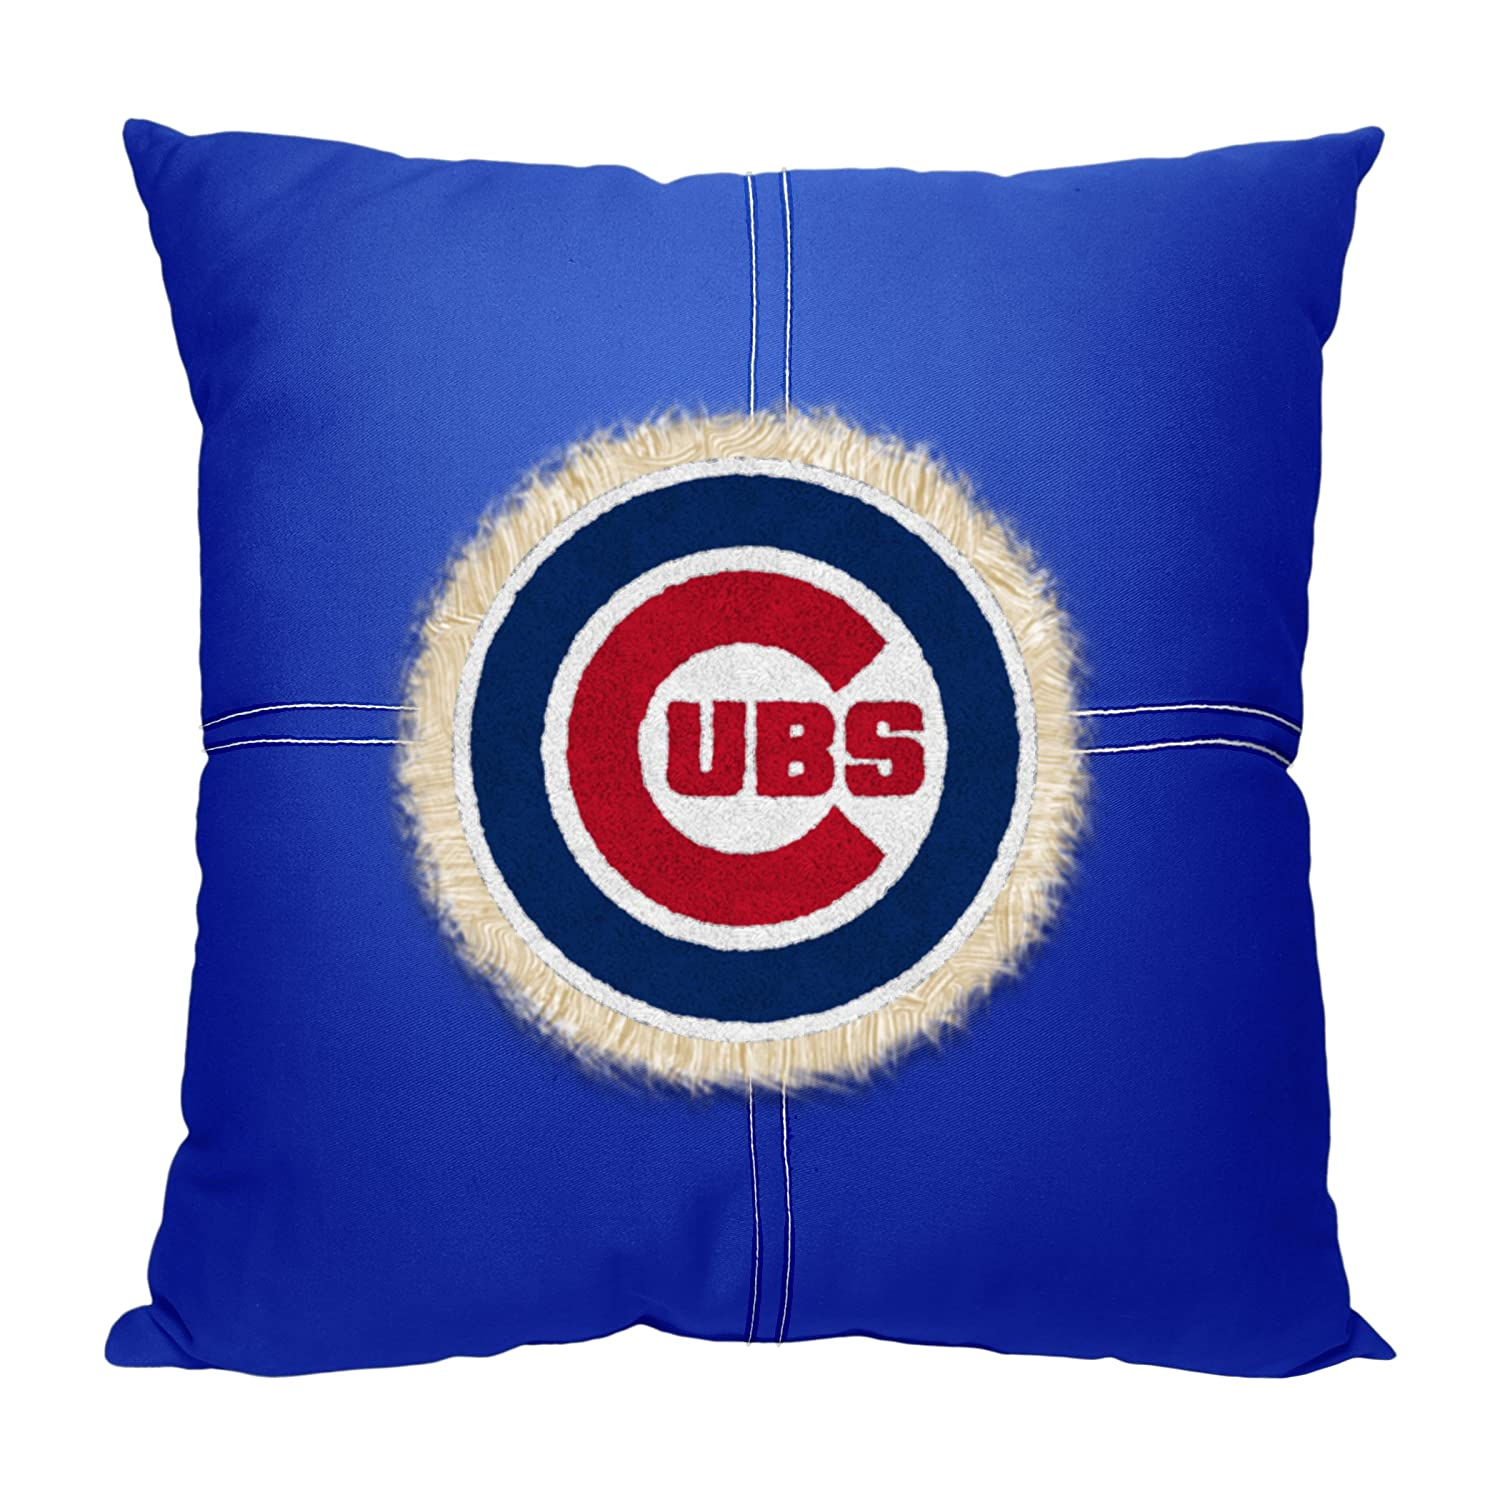 Officially Licensed MLB Decorative Letterman Pillow Soft Comfortable Throws Bedding 18 x 18